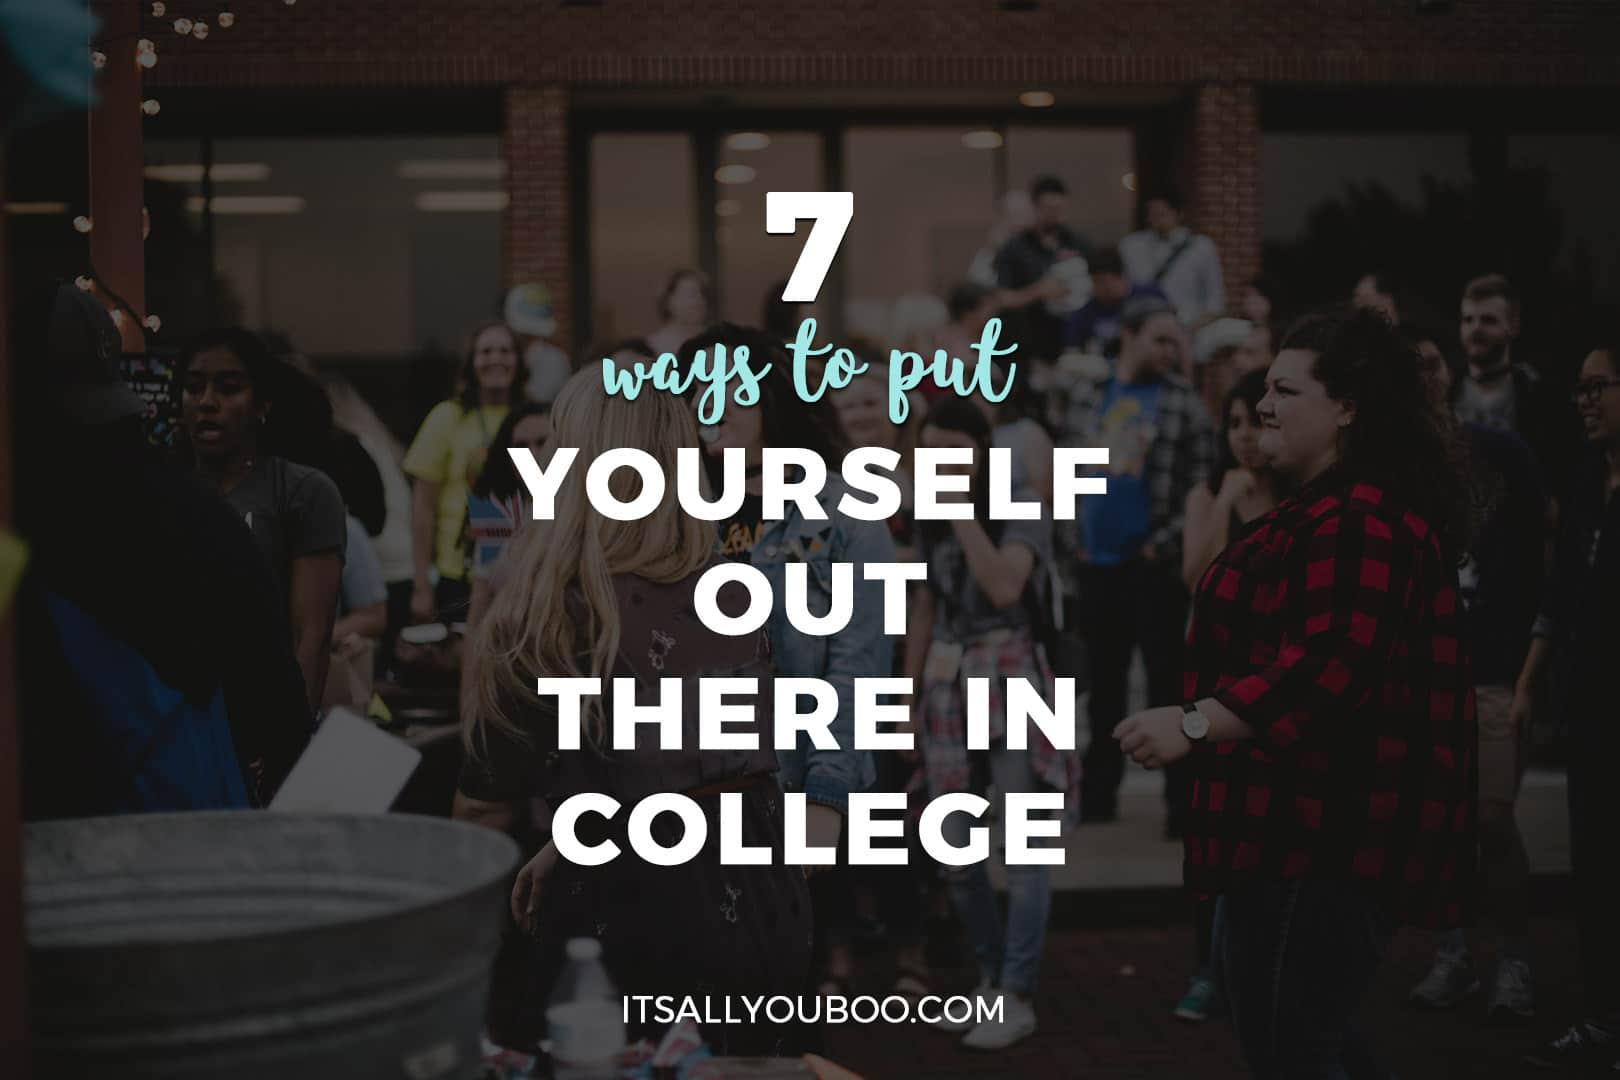 7 Ways to Put Yourself Out There in College